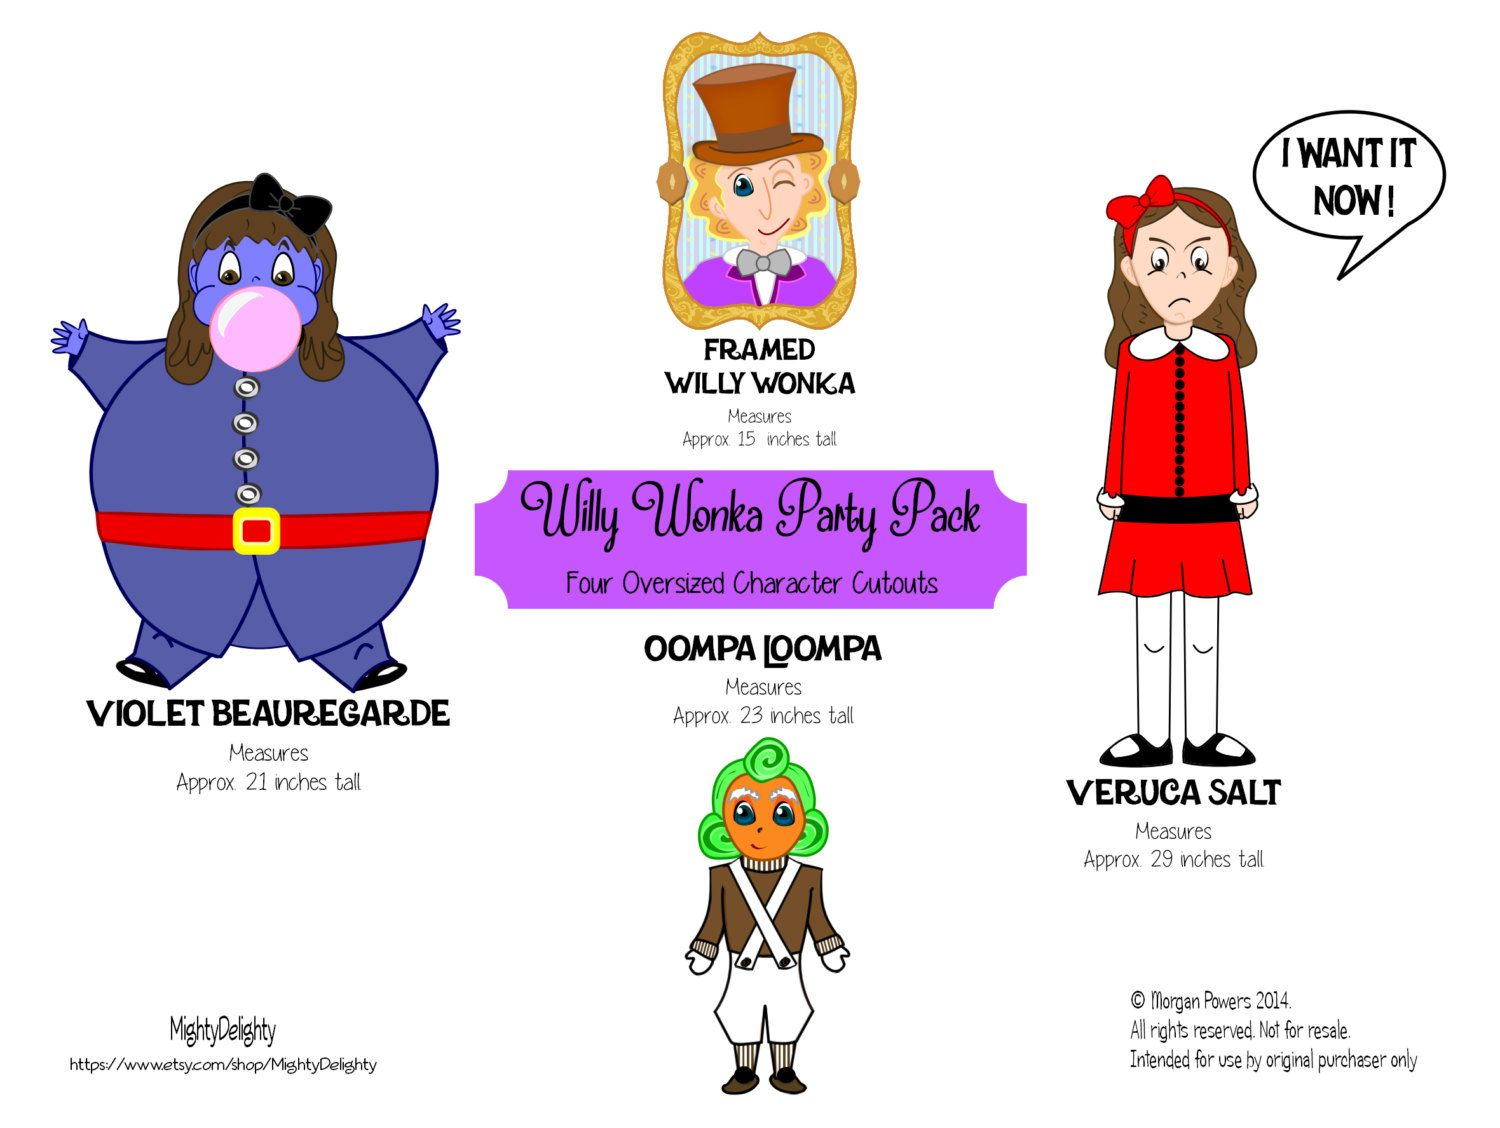 willy wonka and the chocolate factory clip art school ideas in rh pinterest com willy wonka characters clip art willy wonka golden ticket clip art